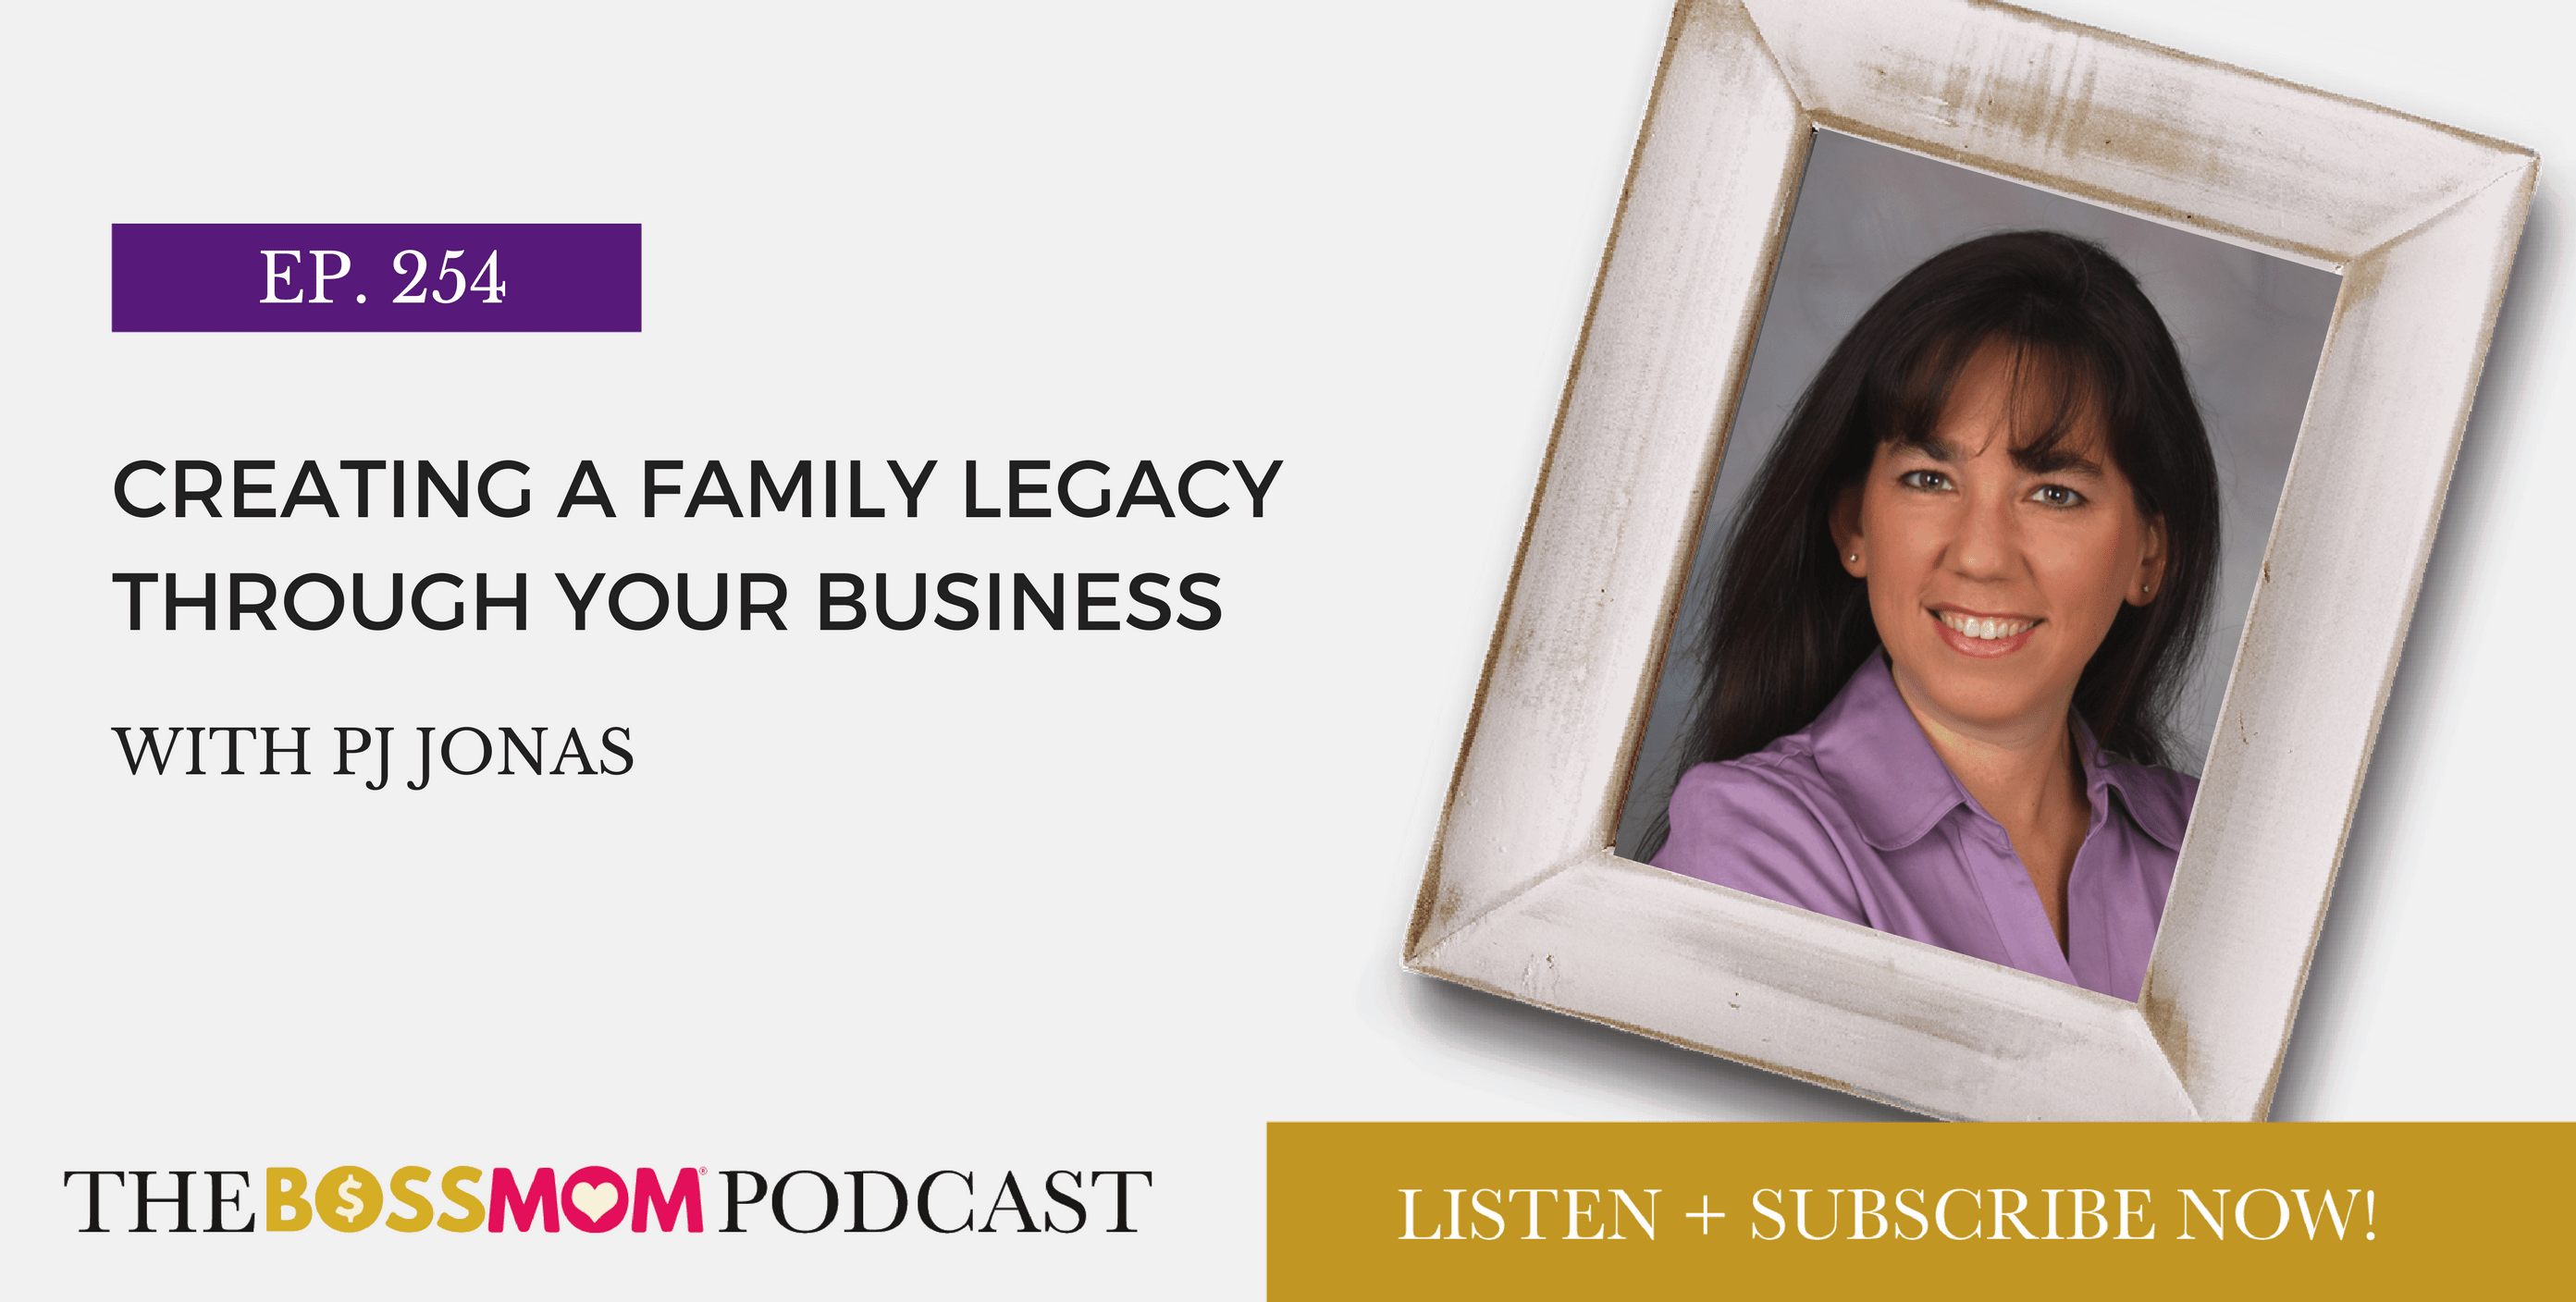 Episode 254: Creating a Family Legacy Through Your Business with PJ Jonas